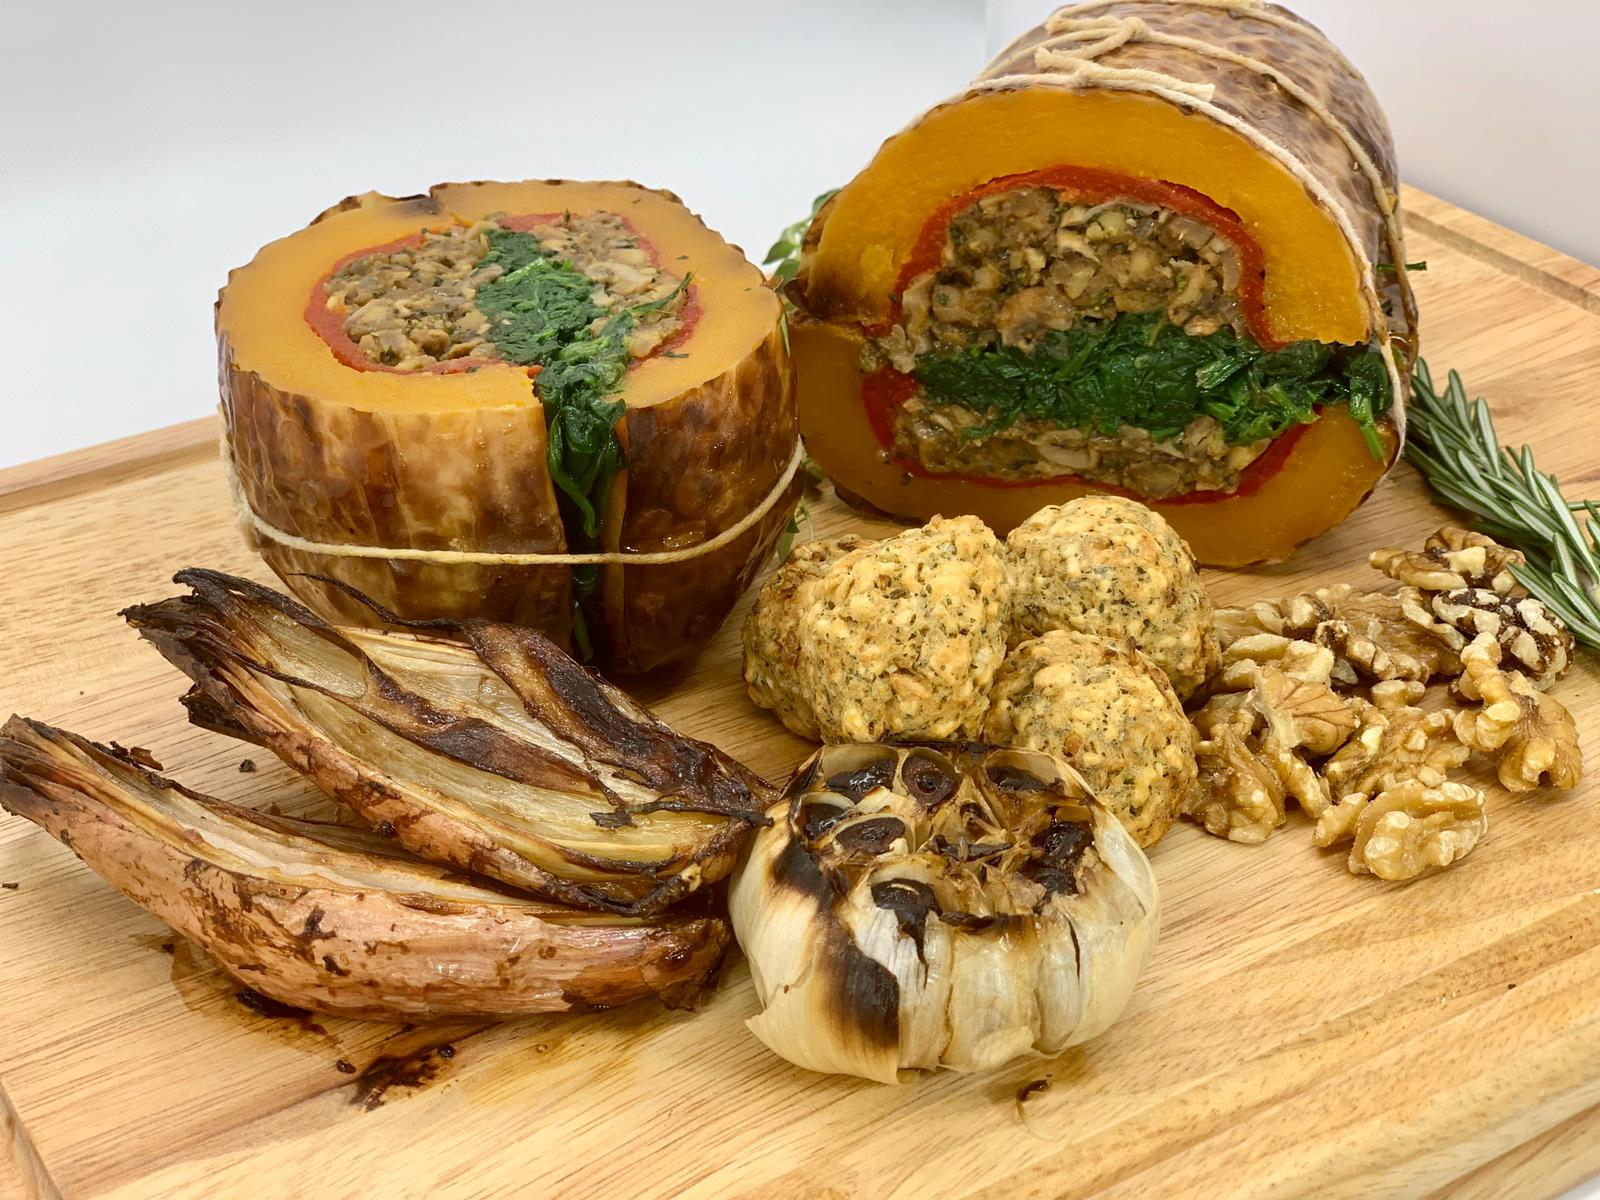 Vegan Roasted butternut stuffed with chestnuts, mushrooms, walnuts & spinach with 4 sides (4 guests)